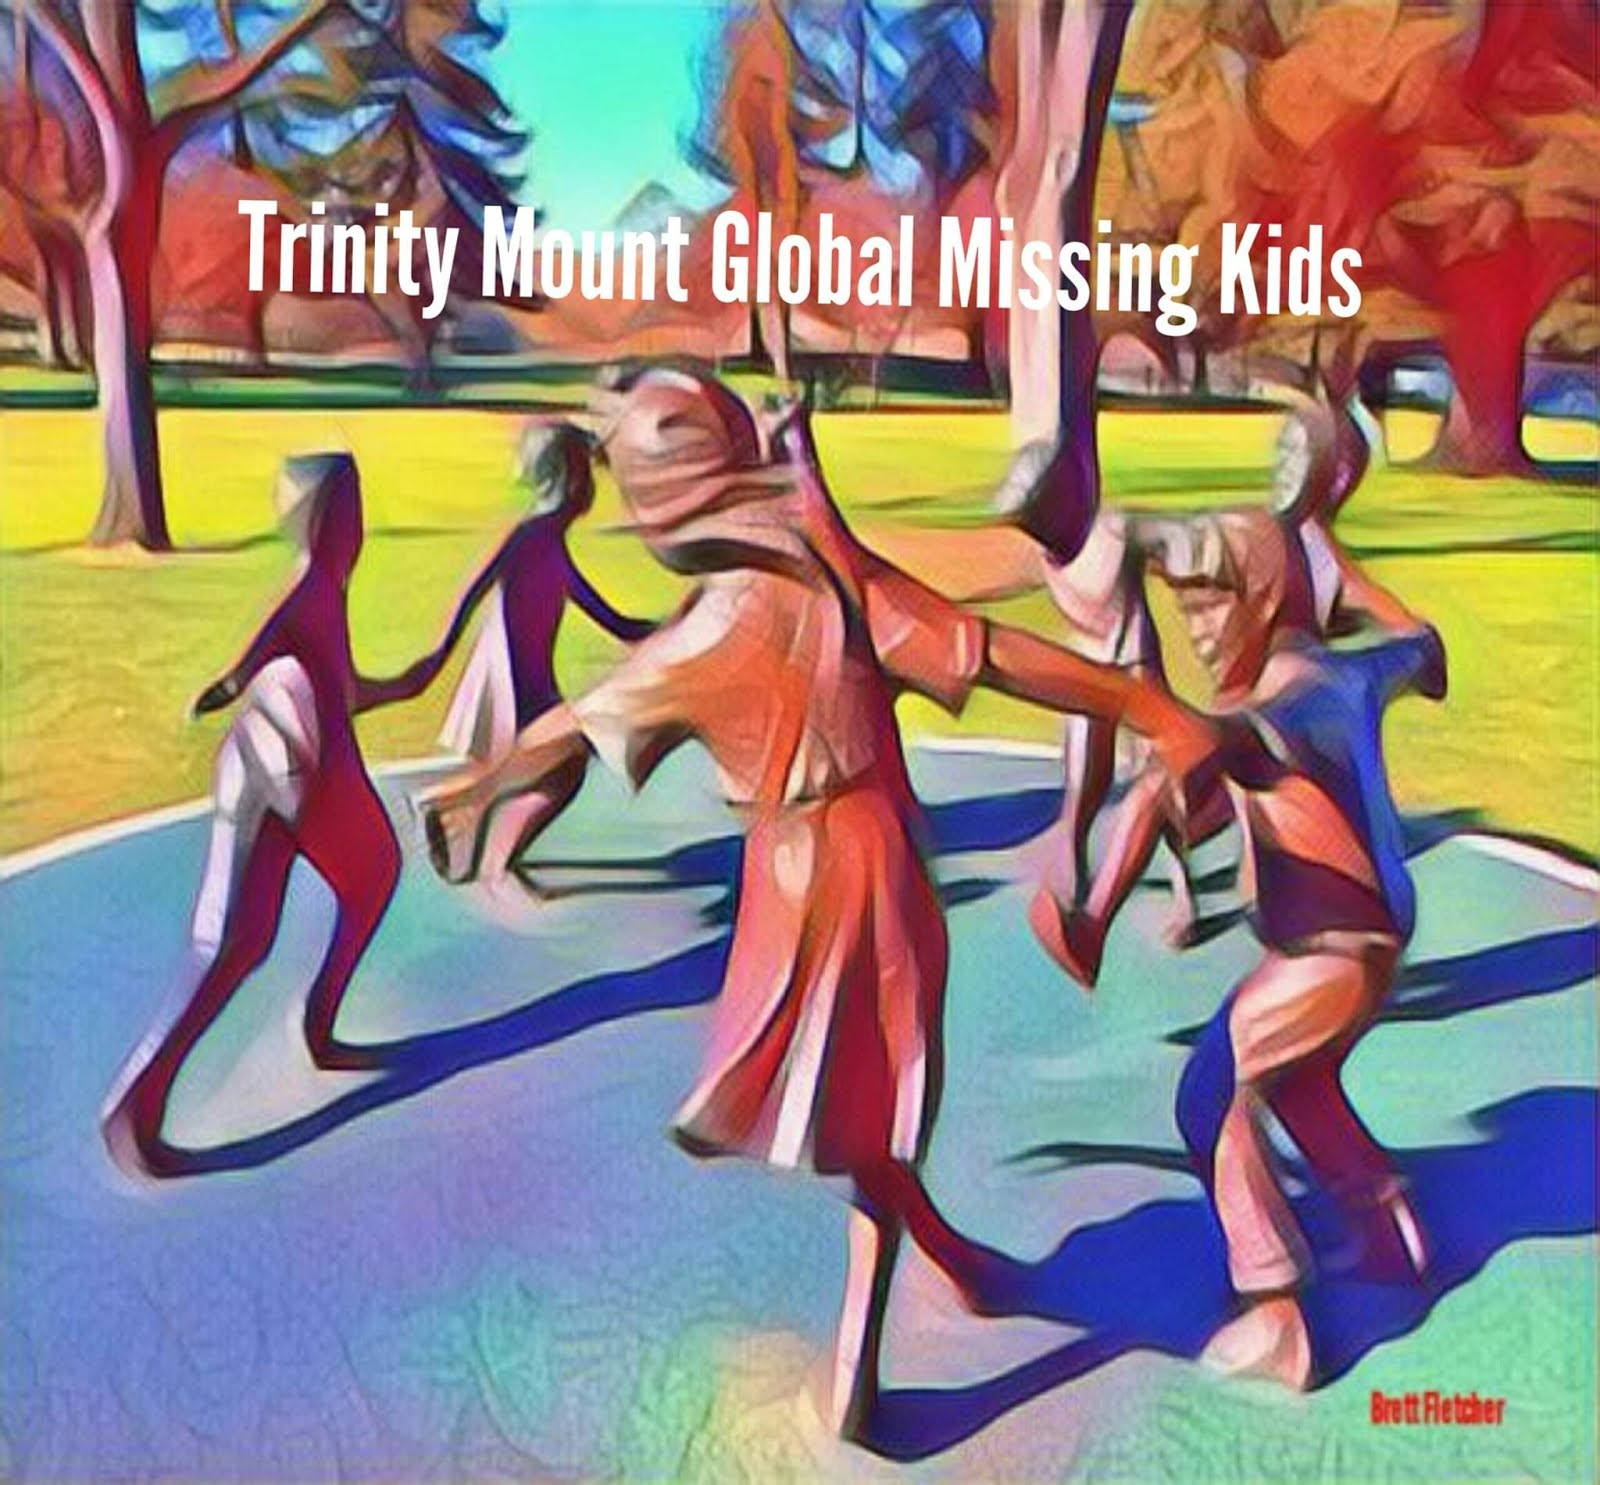 Trinity Mount Global Missing Kids